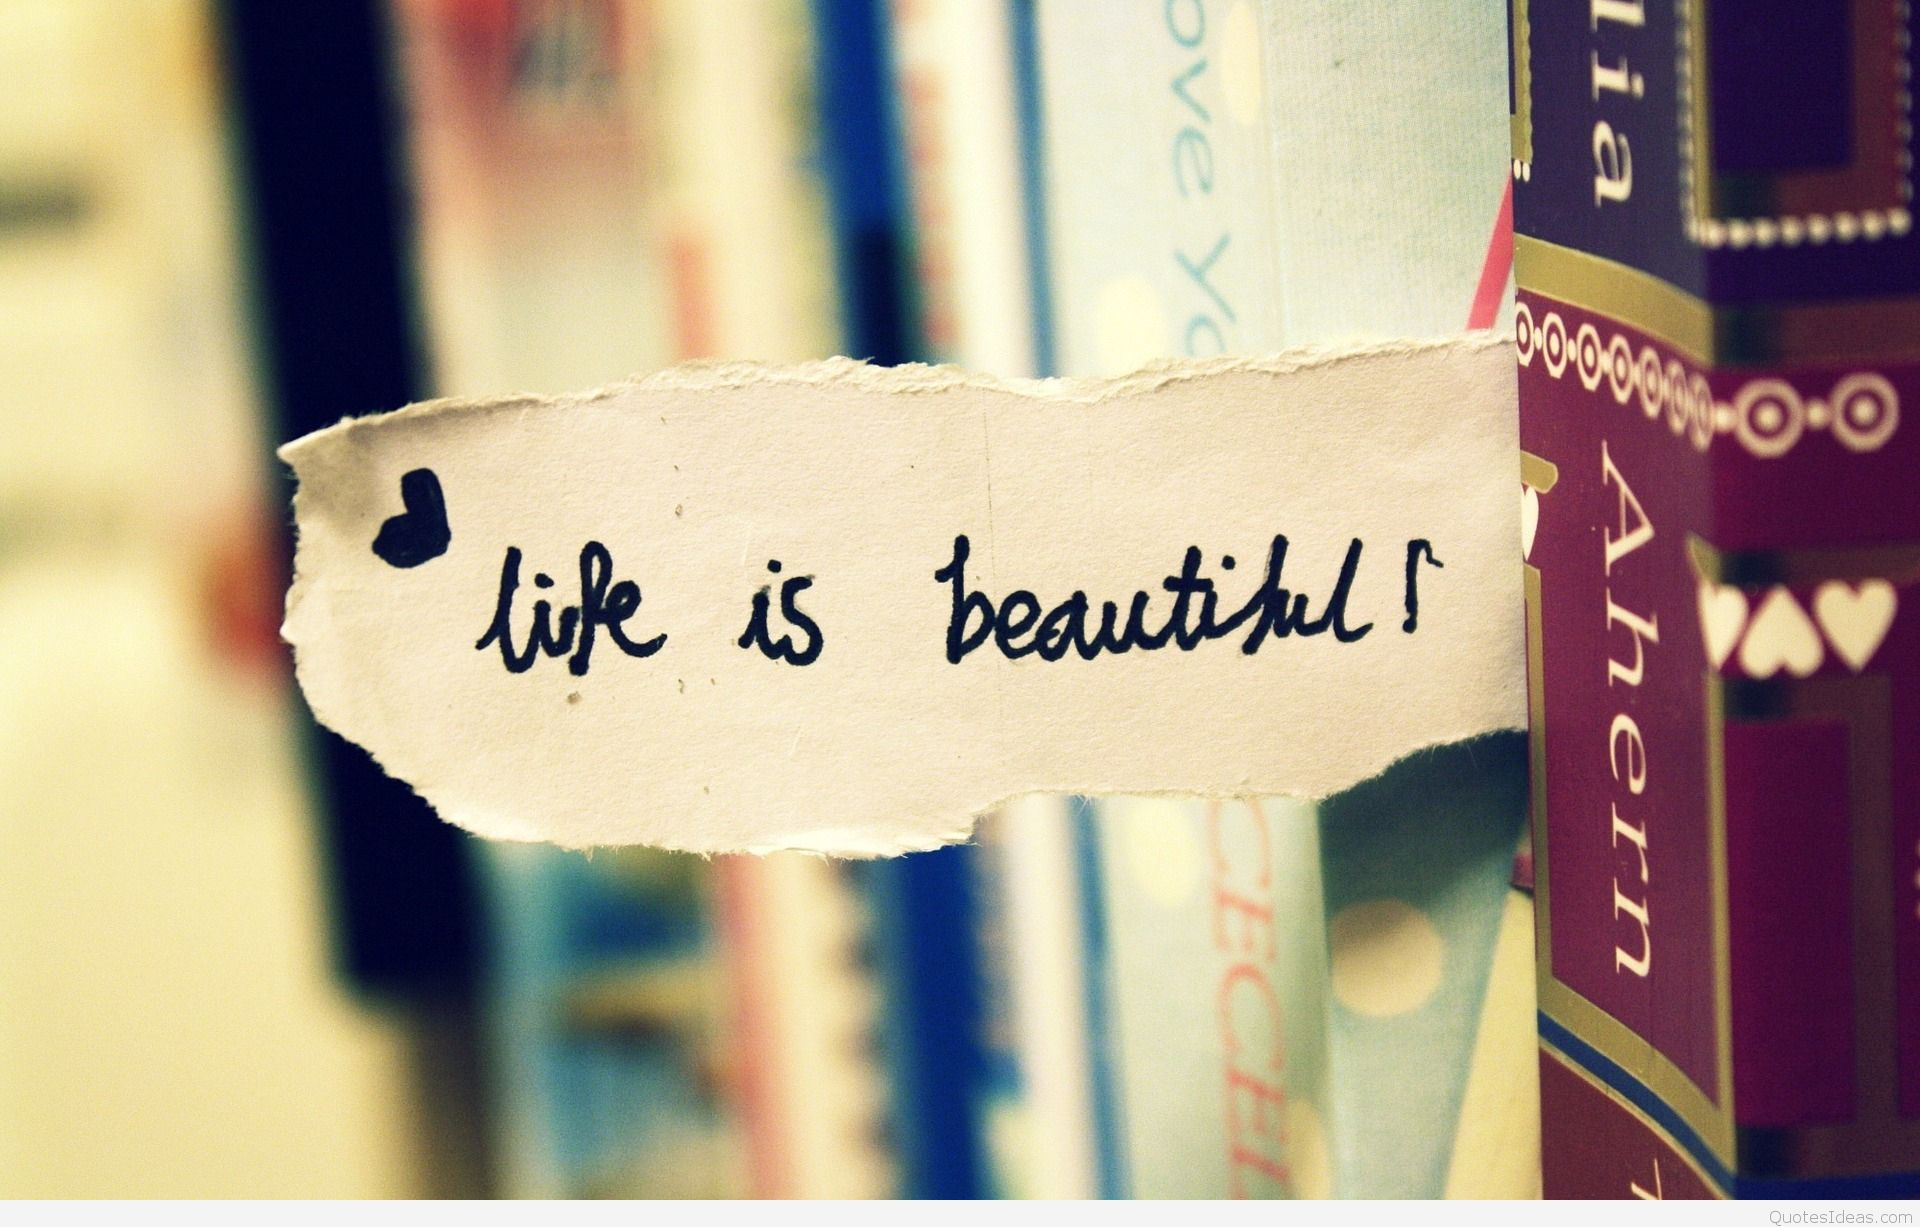 Wallpaper Of Life Is Beautiful